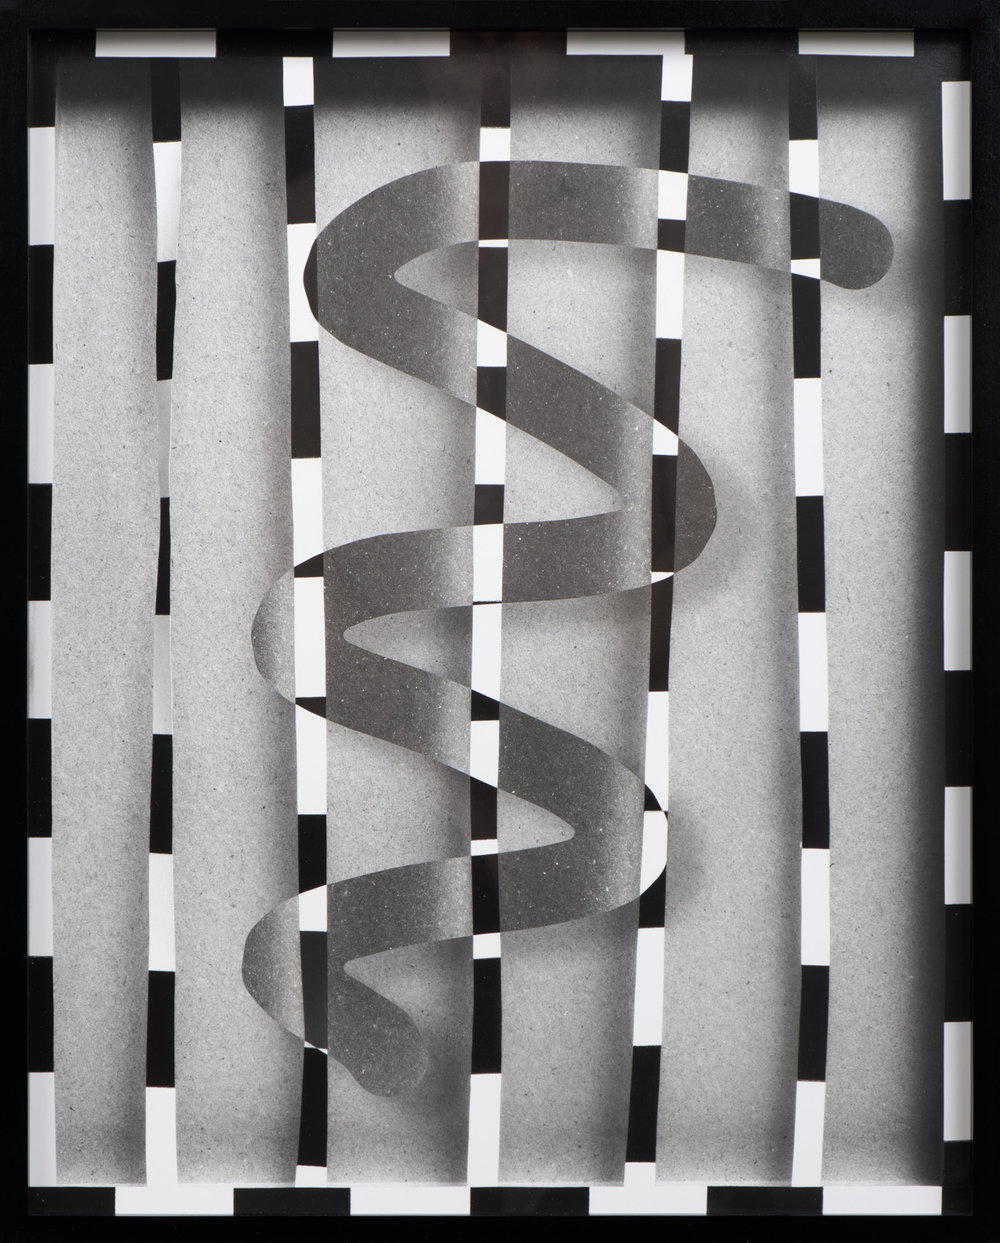 Valerie Green  Physical , 2018 Silver gelatin print 20 7/8 x 16 3/4 inches